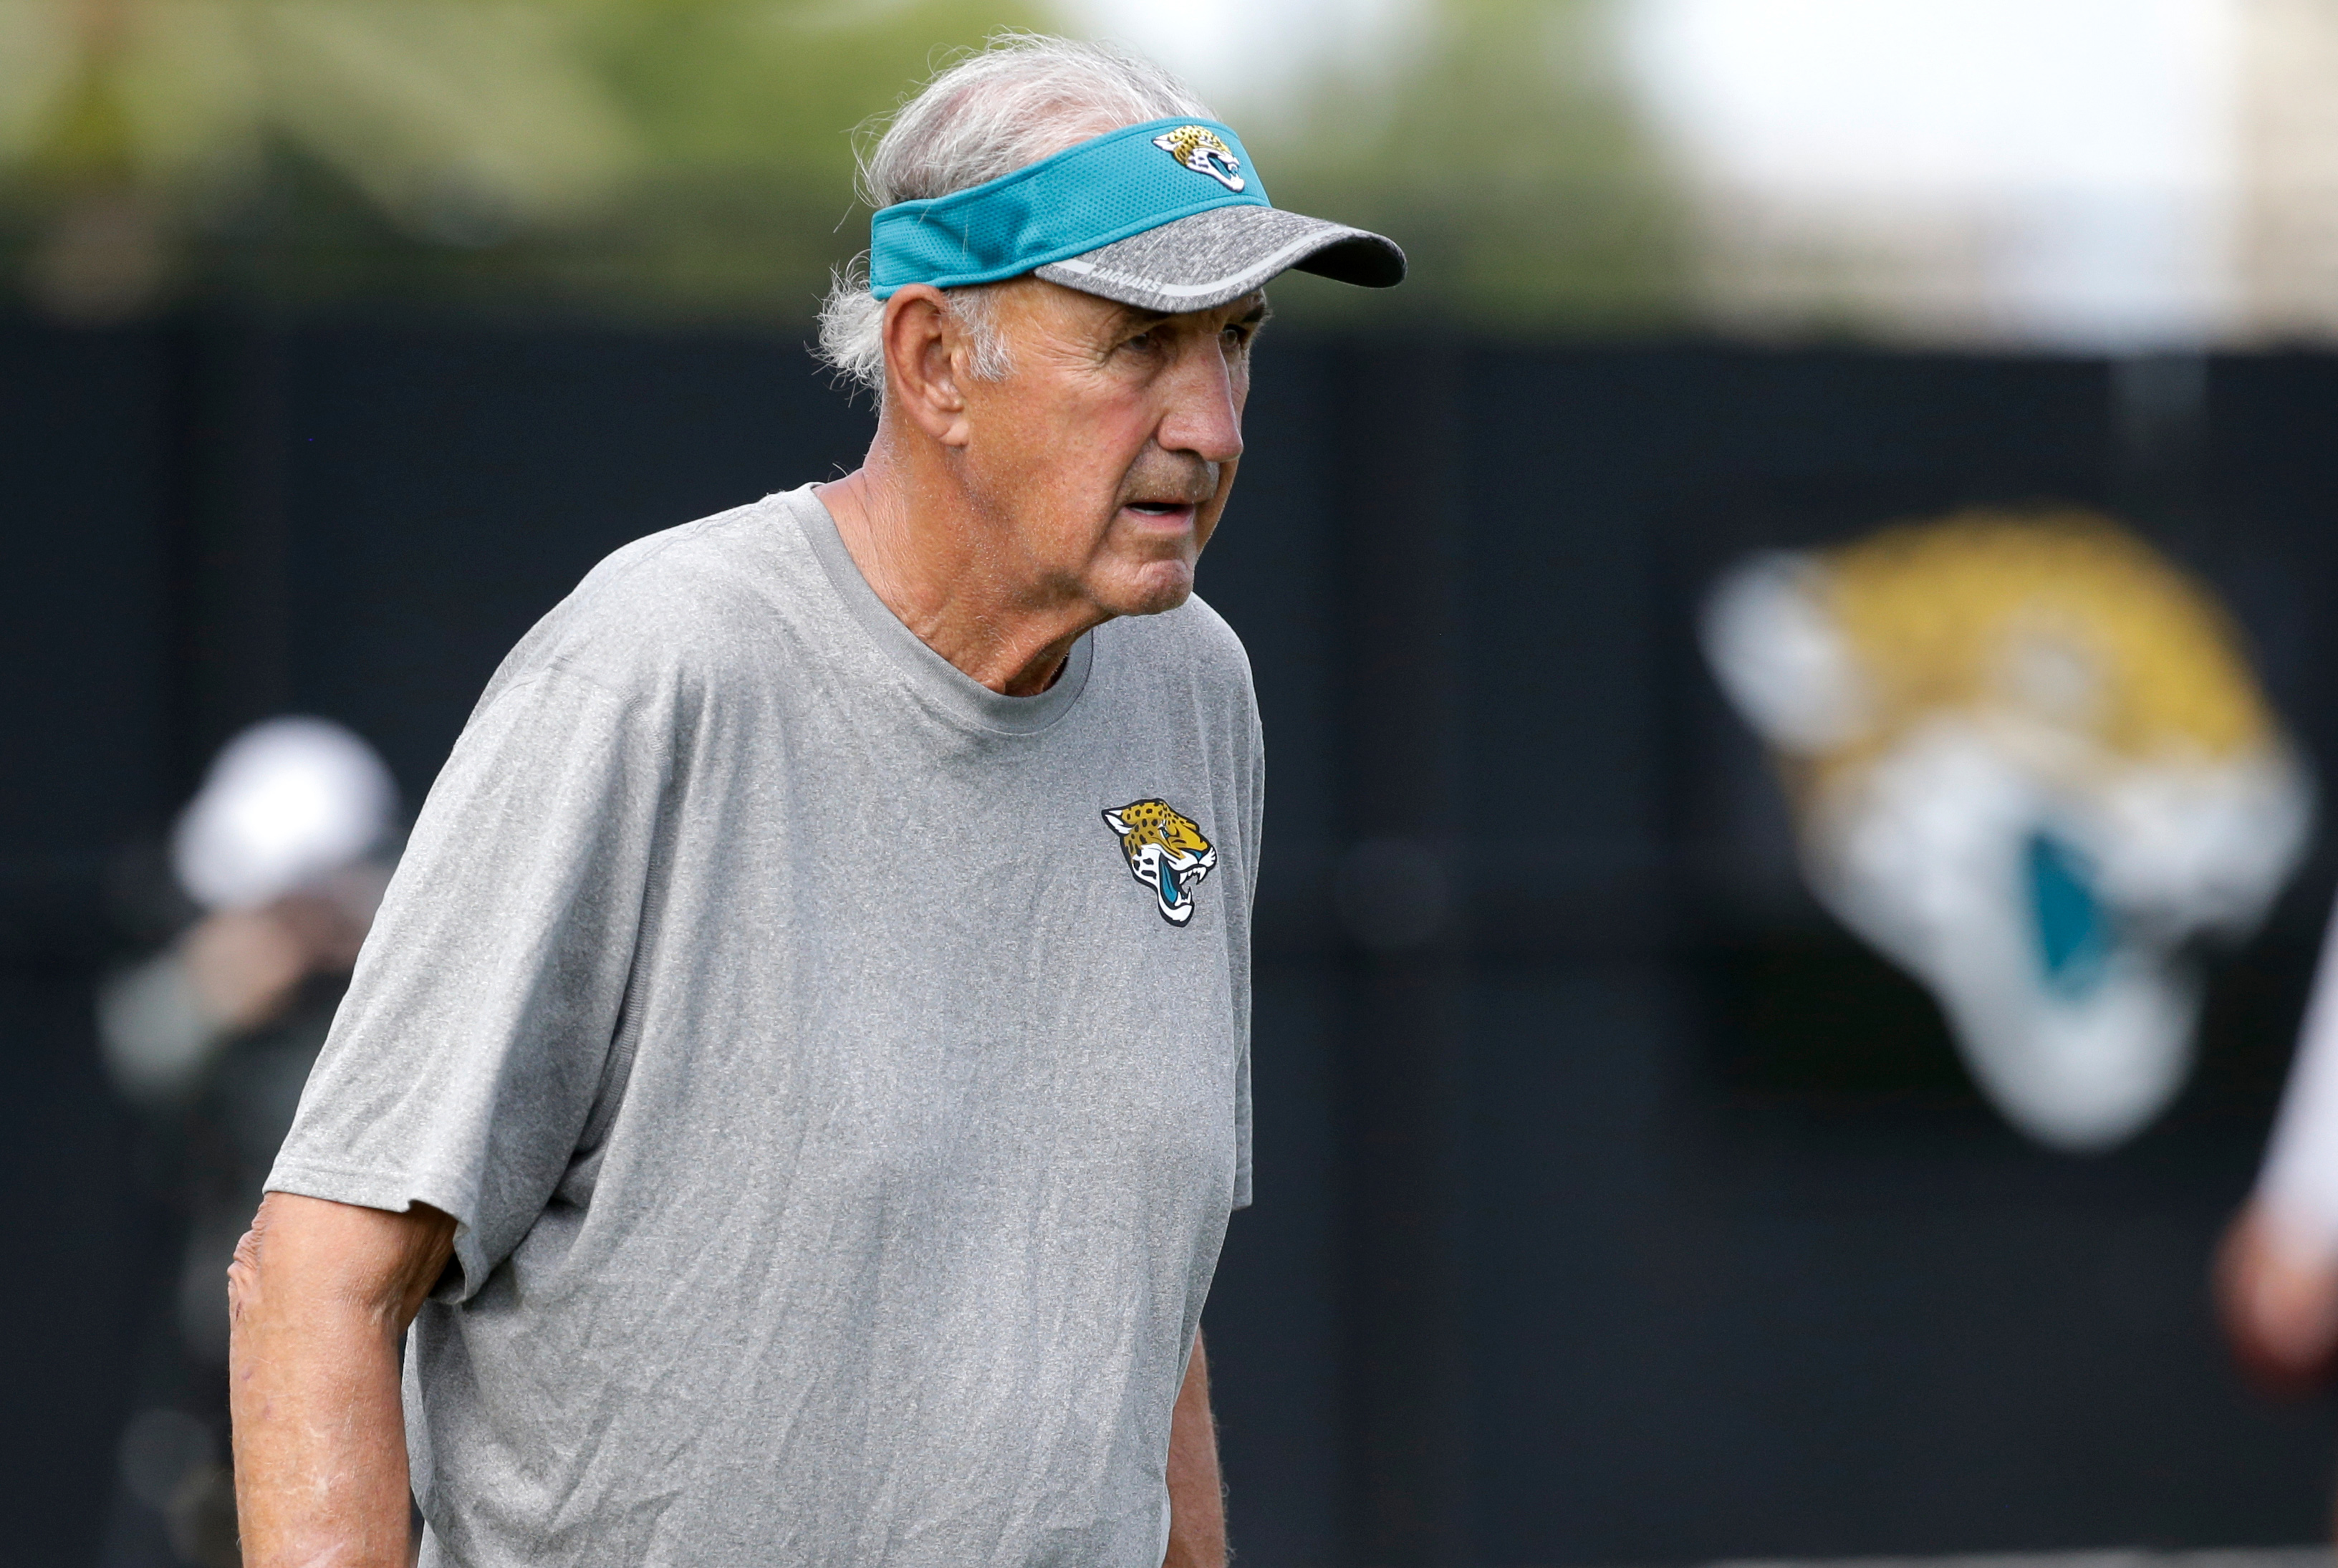 FILe - In this July 30, 2016, file photo, Jacksonville Jaguars defensive assistant Monte Kiffin watches practice during NFL football training camp, in Jacksonville, Fla. Kiffin didn't handle retirement very well.  So the 76-year-old got back into coaching